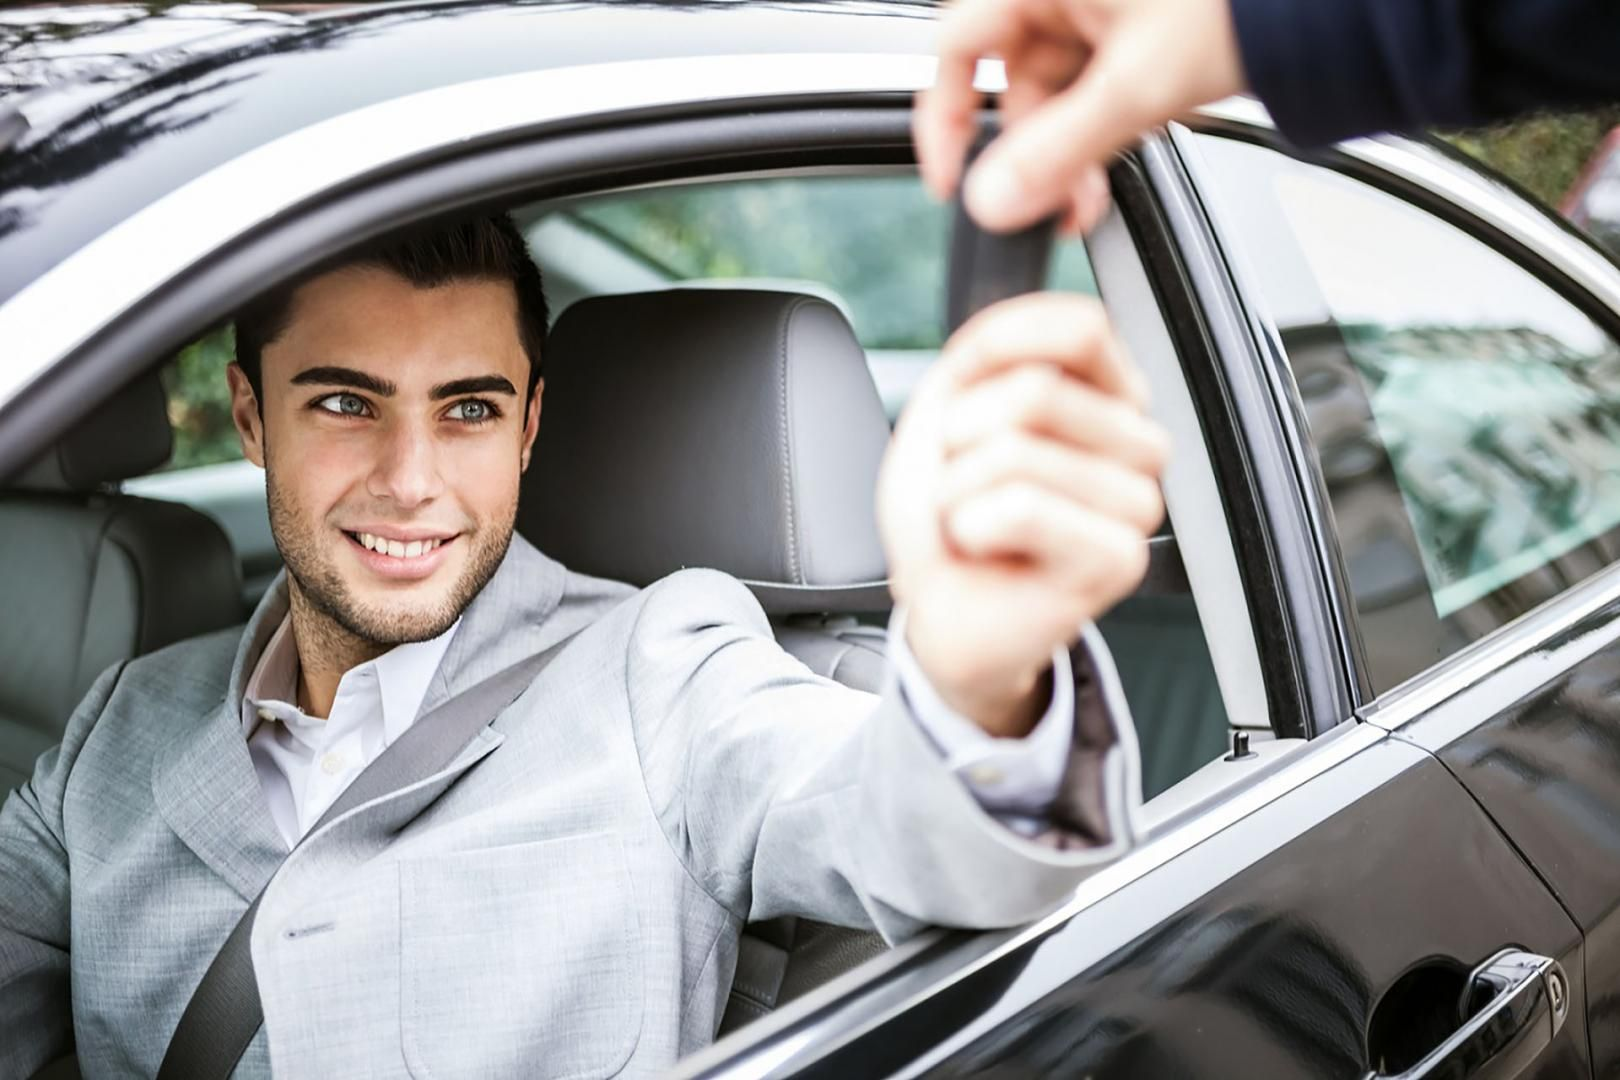 How To Sell Your Car Privately Car, Car rental, Car